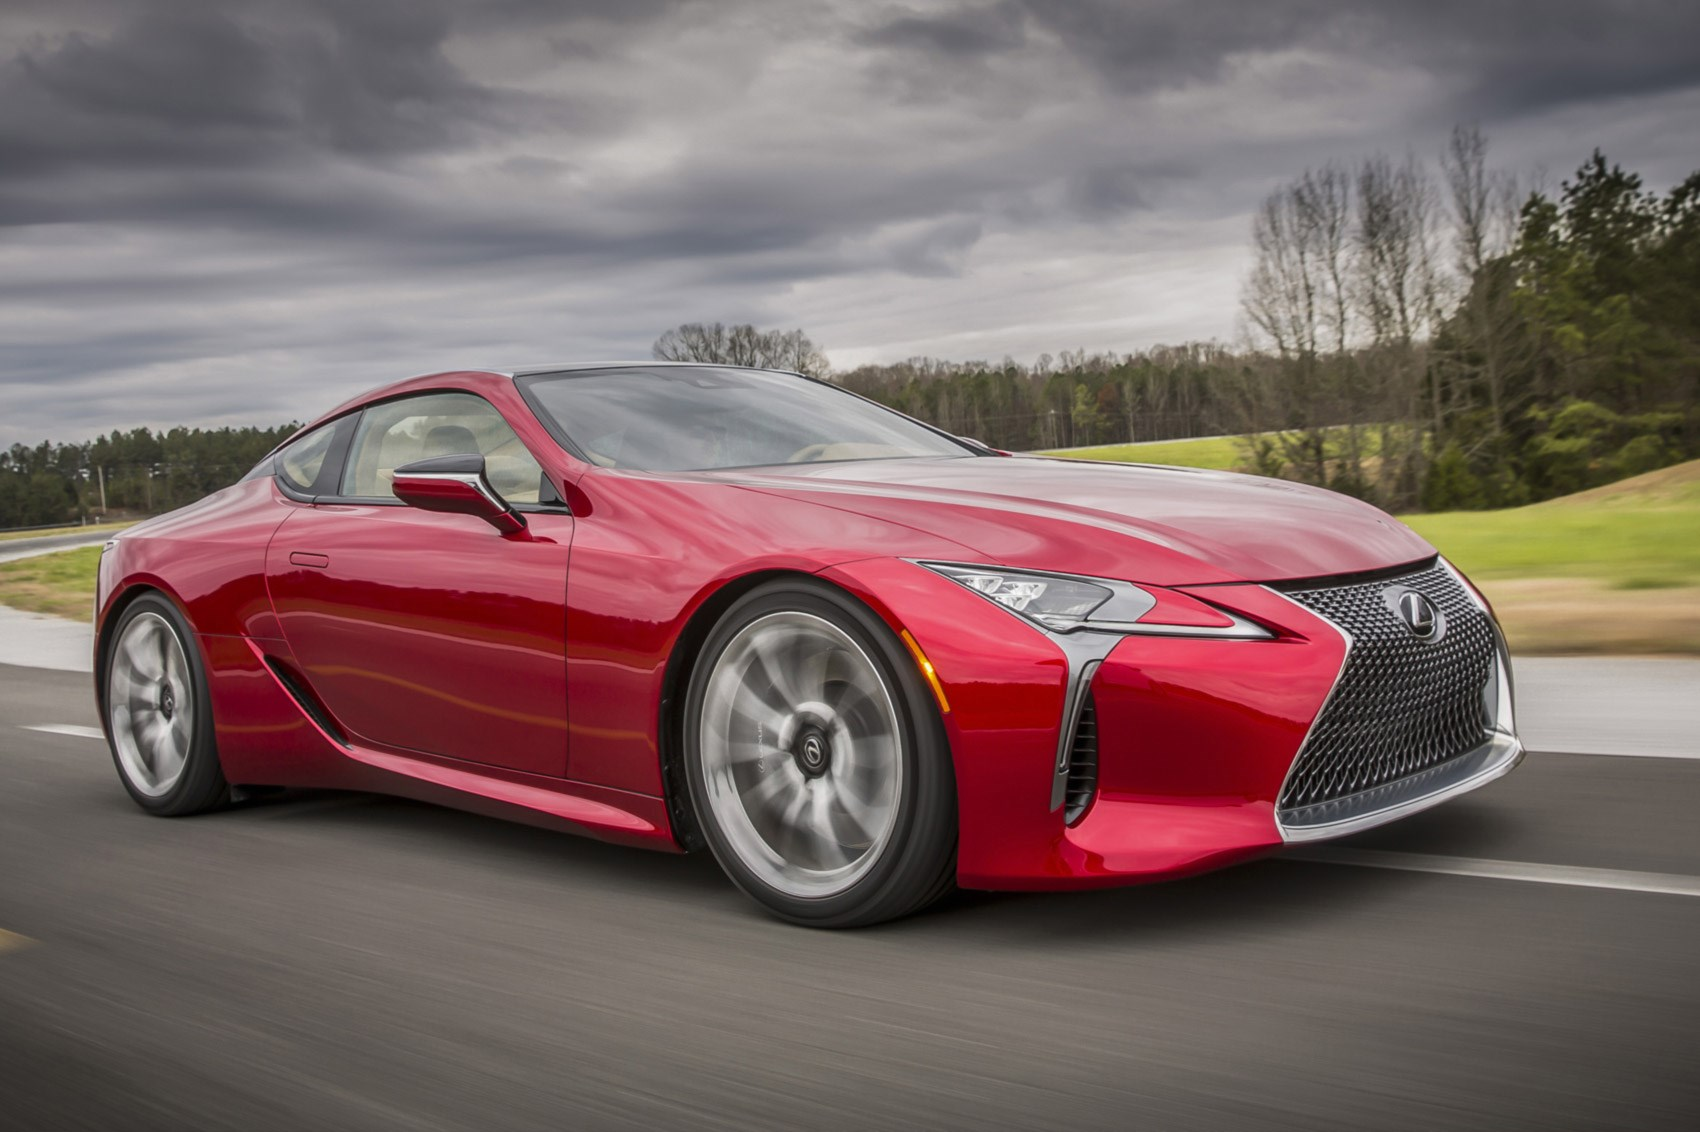 Lexus Rolls Out The Big Guns: New 467bhp LC 500 Coupe